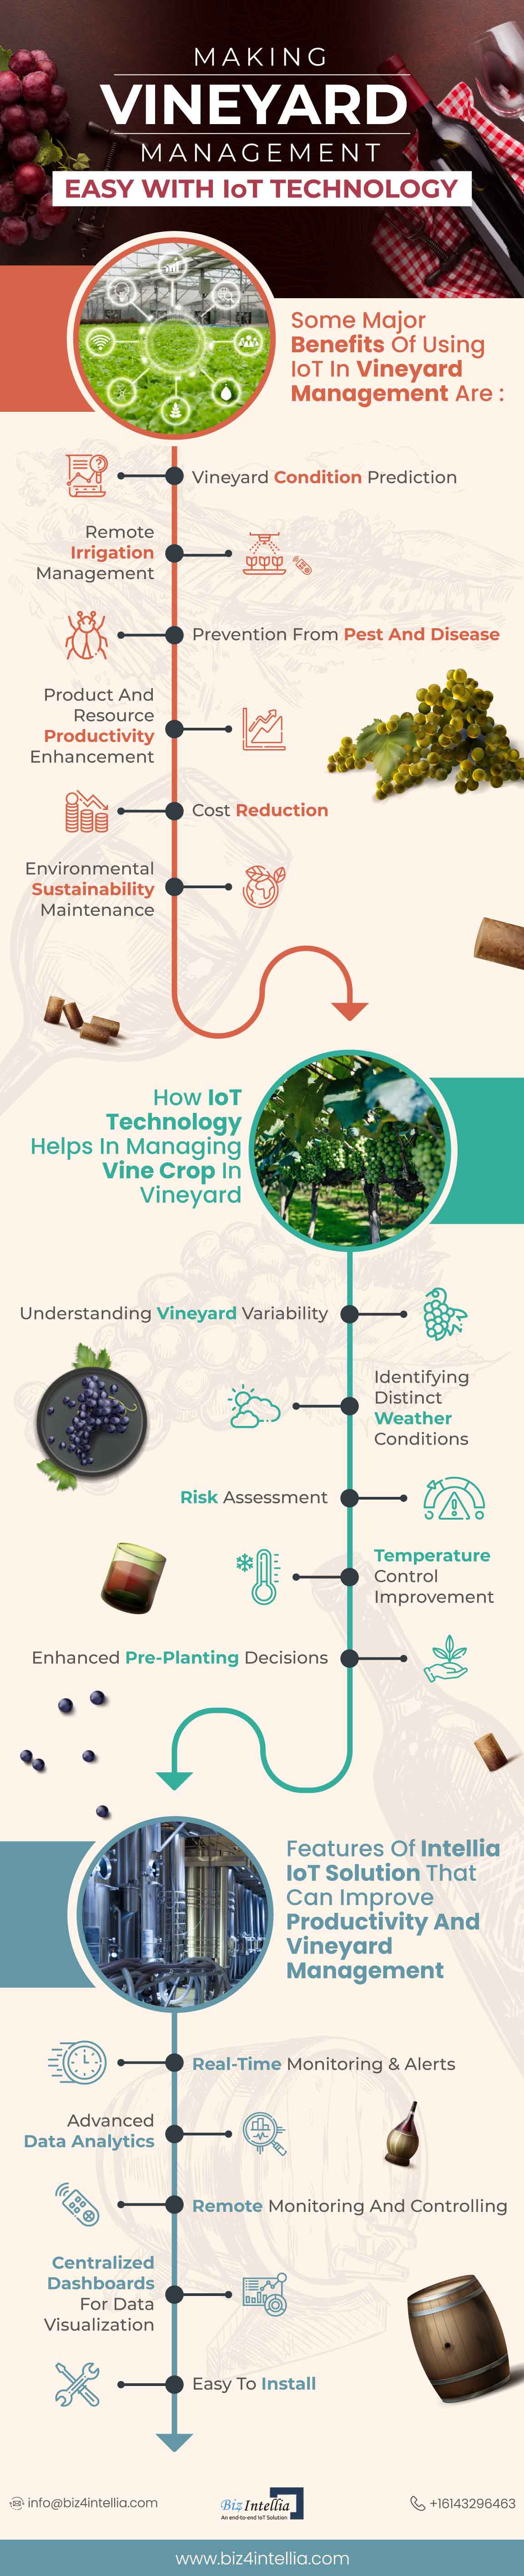 making-vineyard-management-easy-with-iot-technology